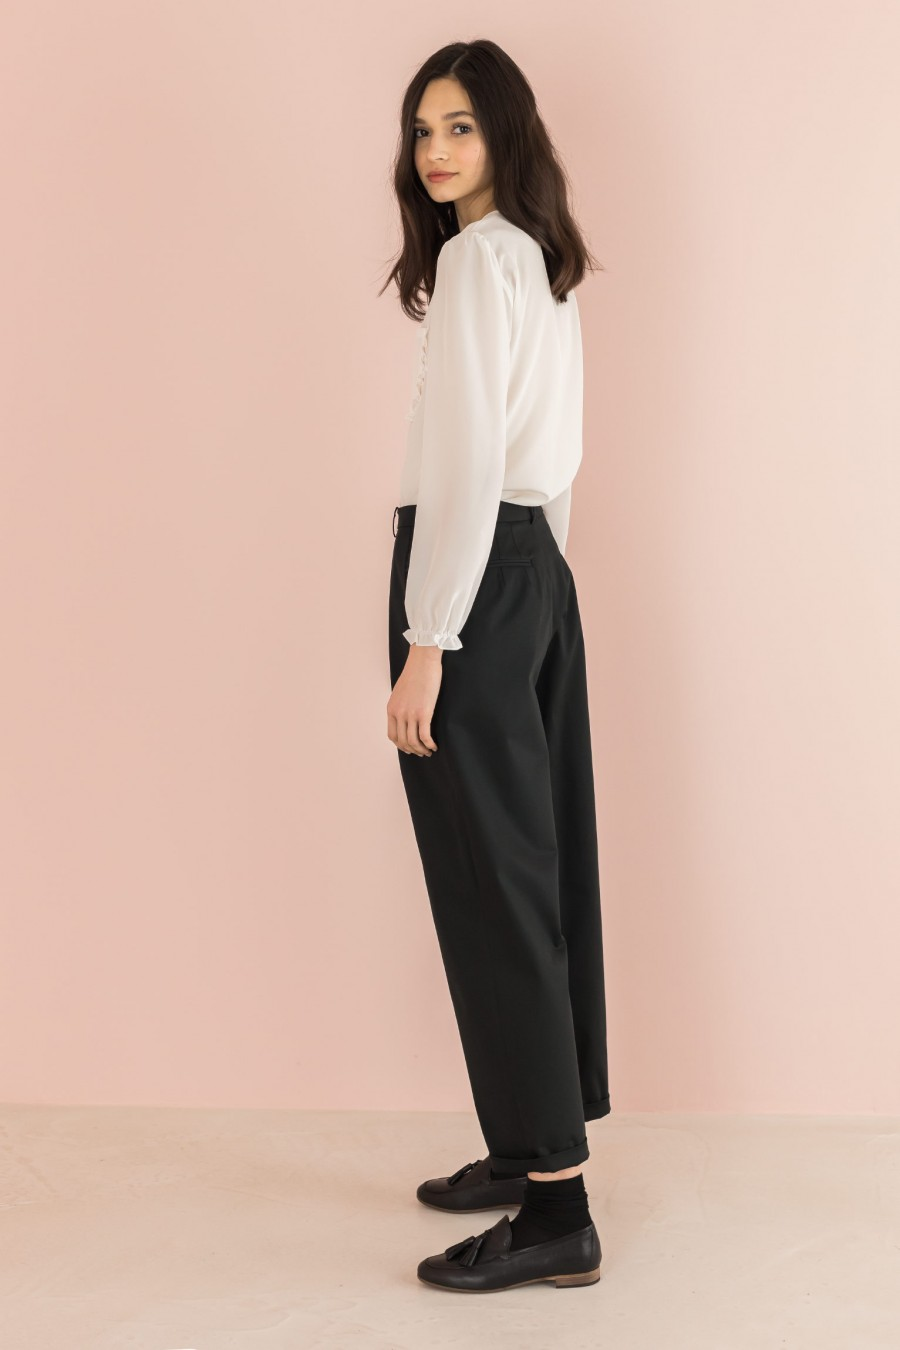 black trousers with ruffles on the pockets